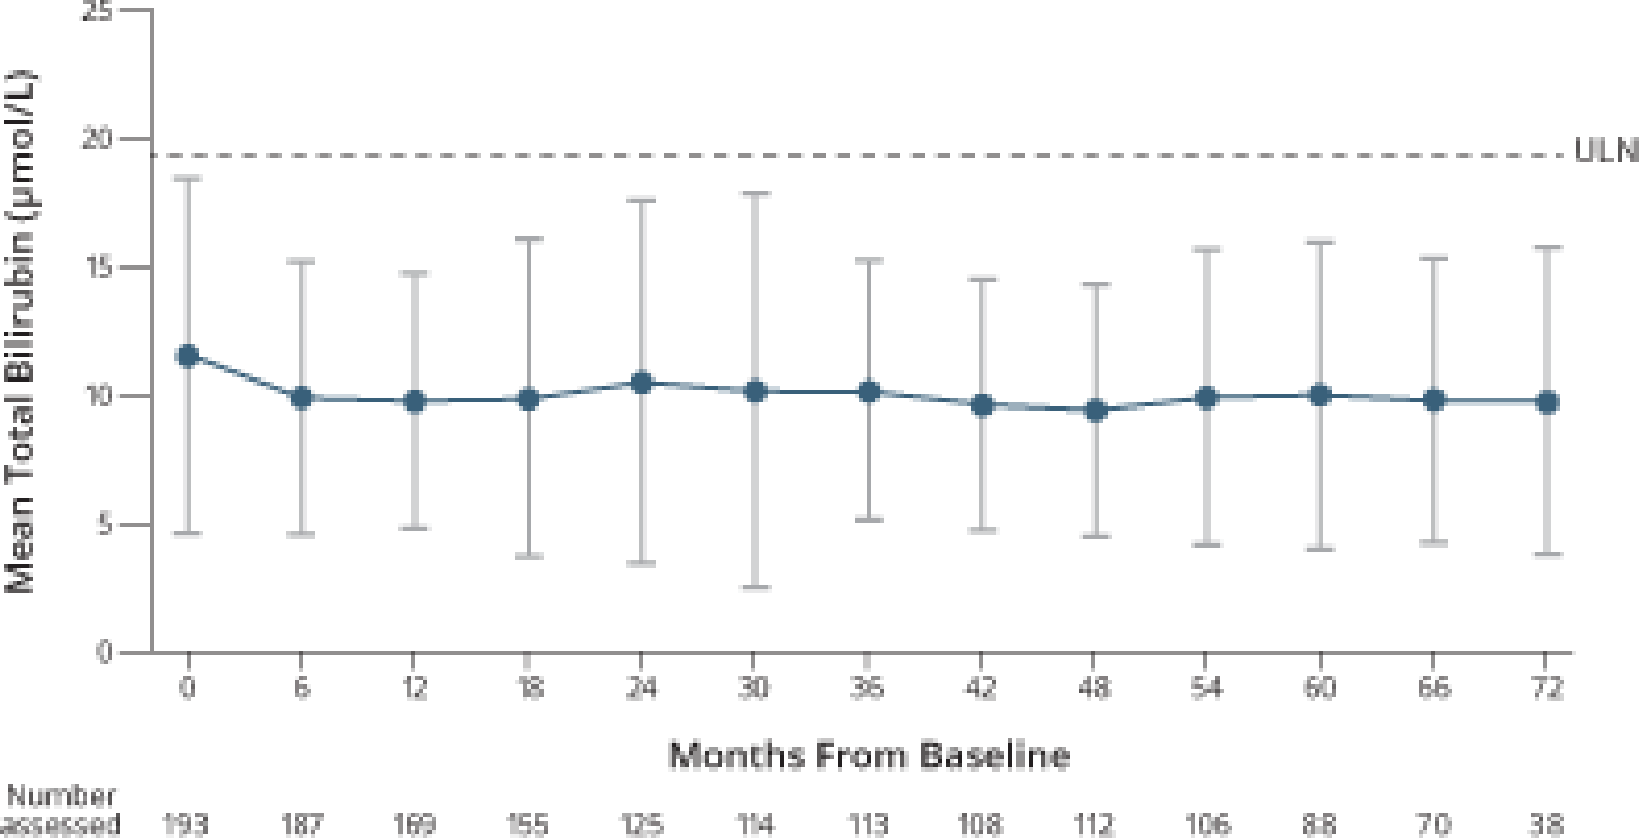 Graph showing mean bilirubin levels in the open-label extension study for OCALIVA® (obeticholic acid)